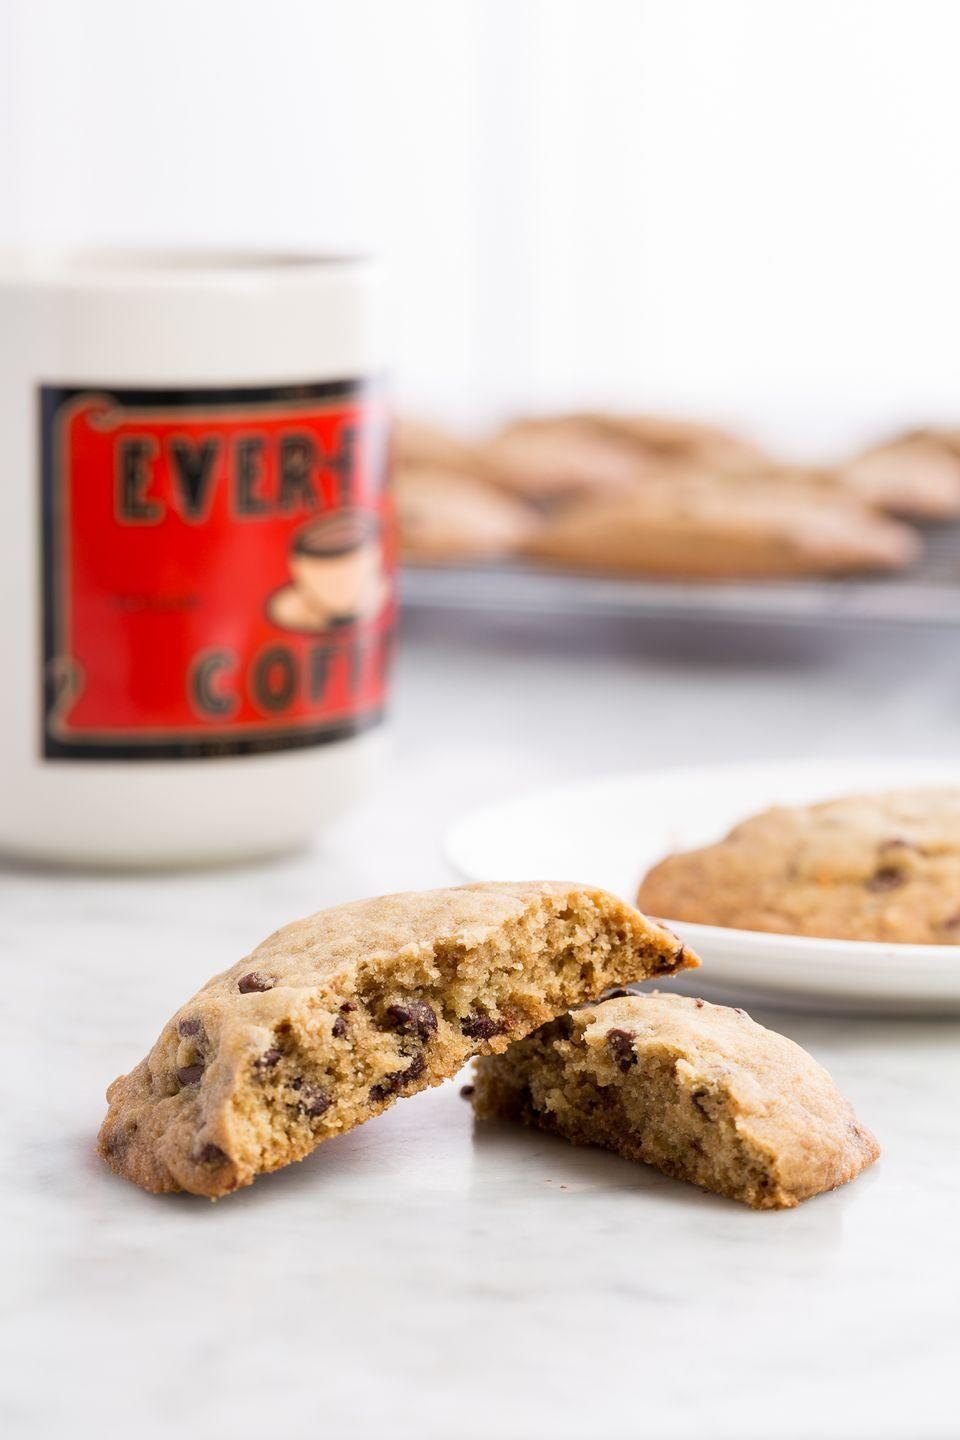 """<p>Mini chocolate chips FTW!</p><p>Get the recipe from <a href=""""https://www.oprahdaily.com/cooking/recipe-ideas/recipes/a46165/copycat-panera-chocolate-chip-cookies-recipe/"""" rel=""""nofollow noopener"""" target=""""_blank"""" data-ylk=""""slk:Delish"""" class=""""link rapid-noclick-resp"""">Delish</a>.</p>"""